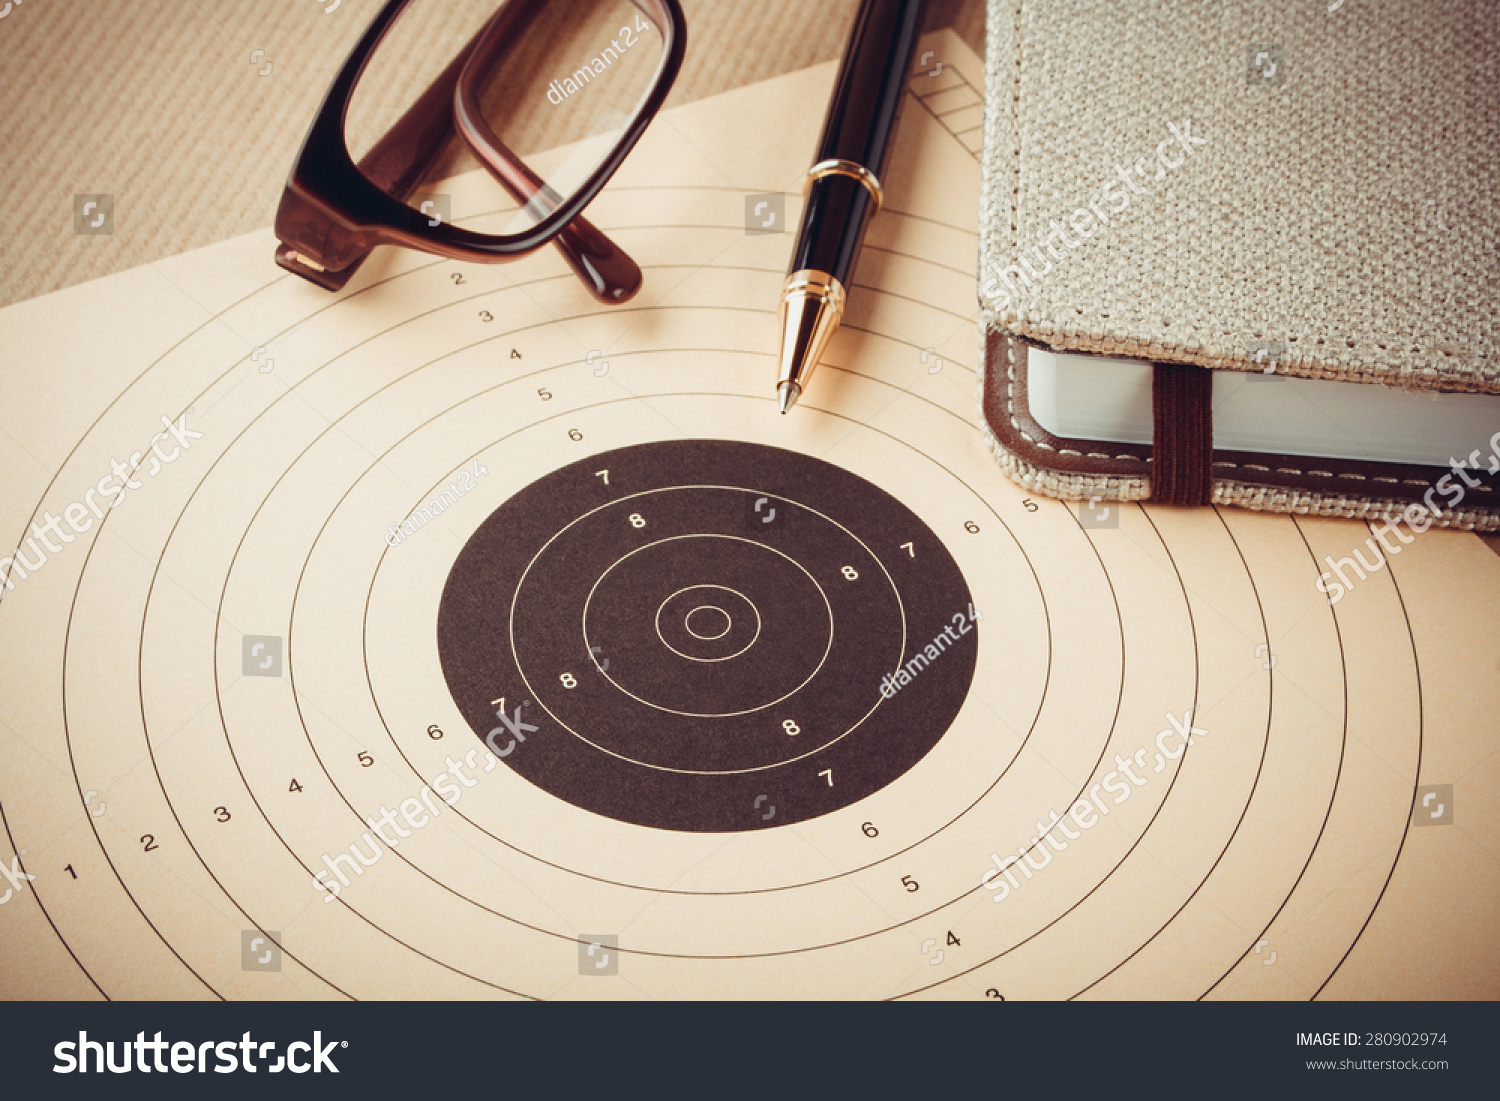 Goal Setting Target Objectives Planning Concept Stock Photo